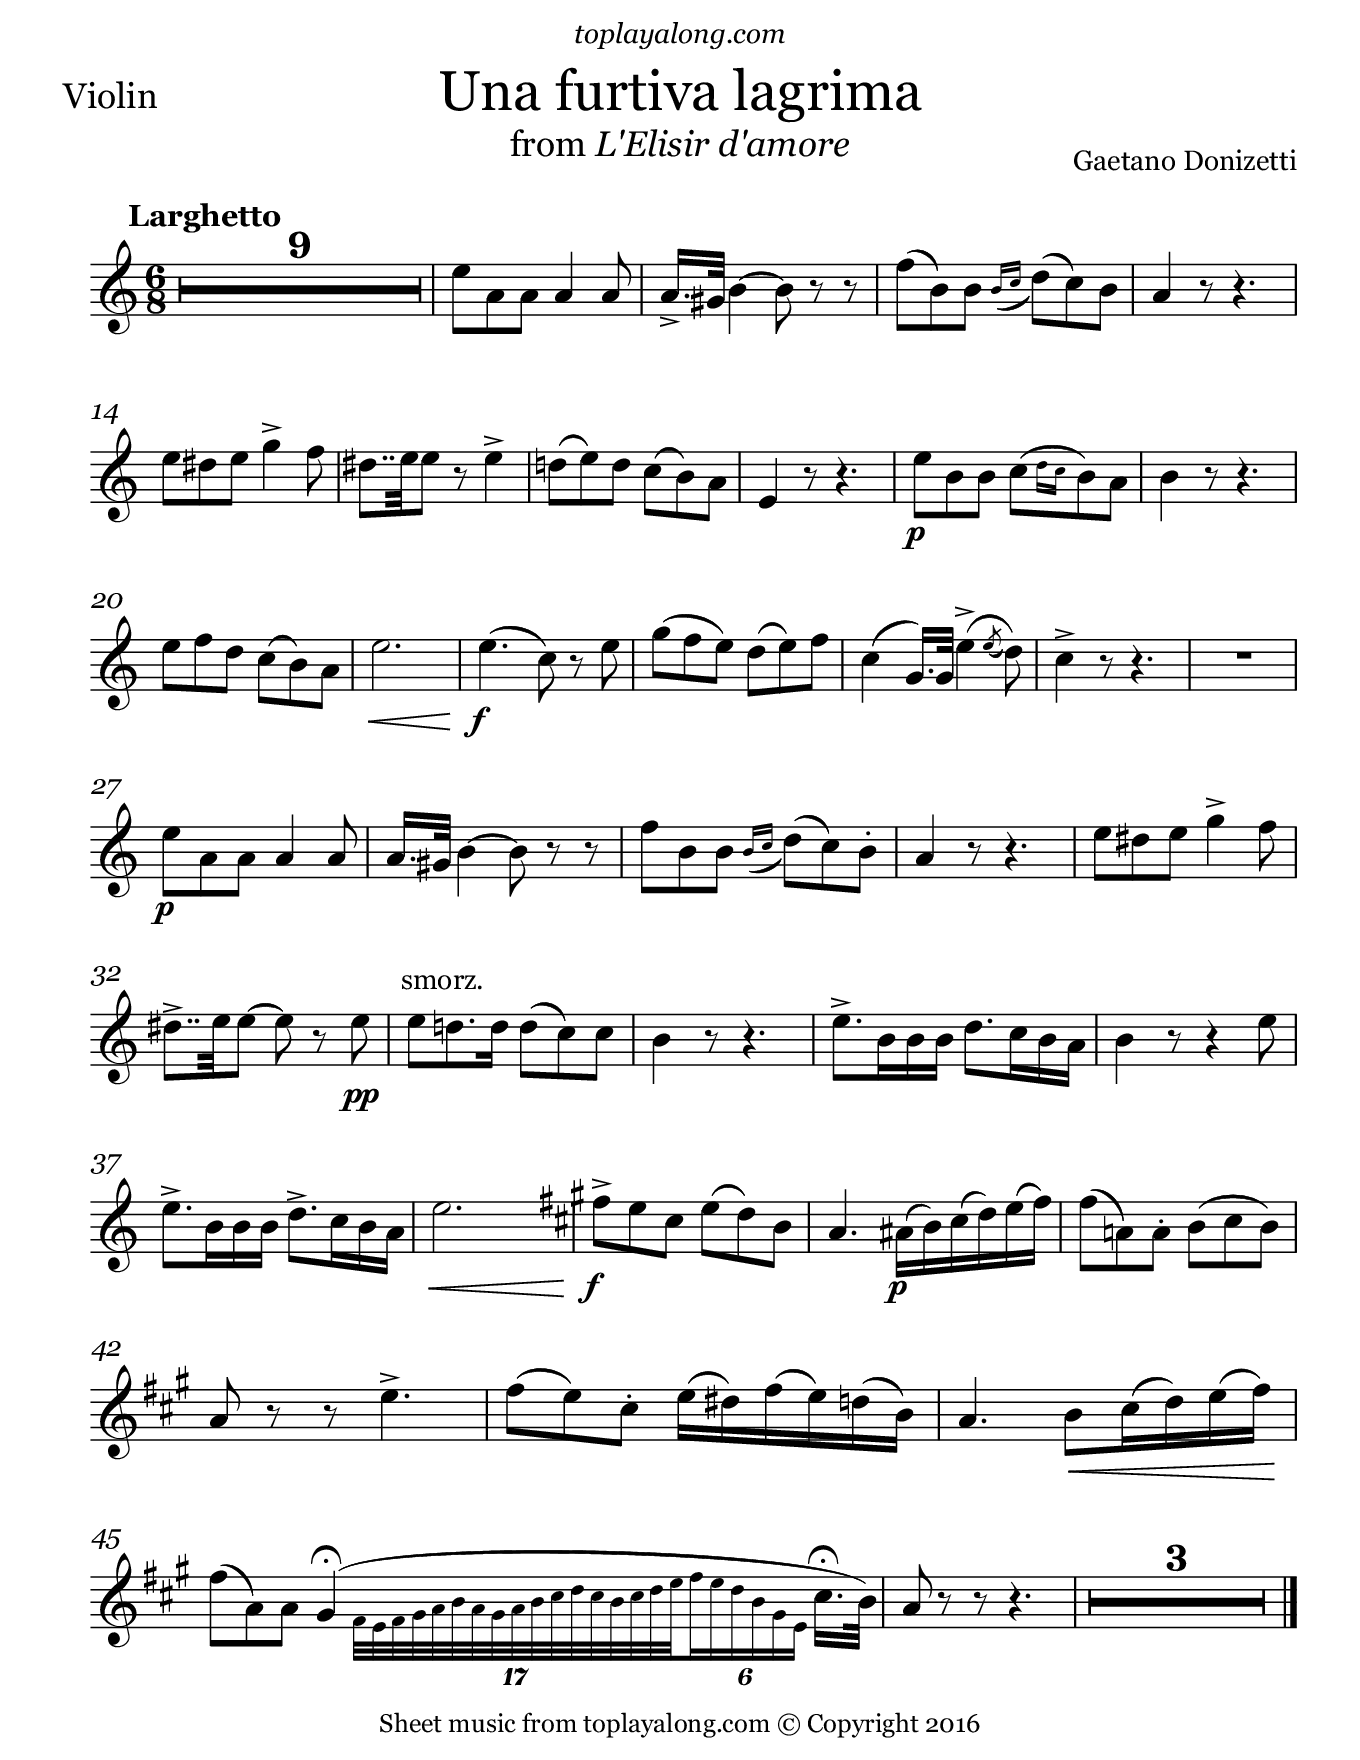 Una furtiva lagrima from L'elisir d'amore by Donizetti. Sheet music for Violin, page 1.